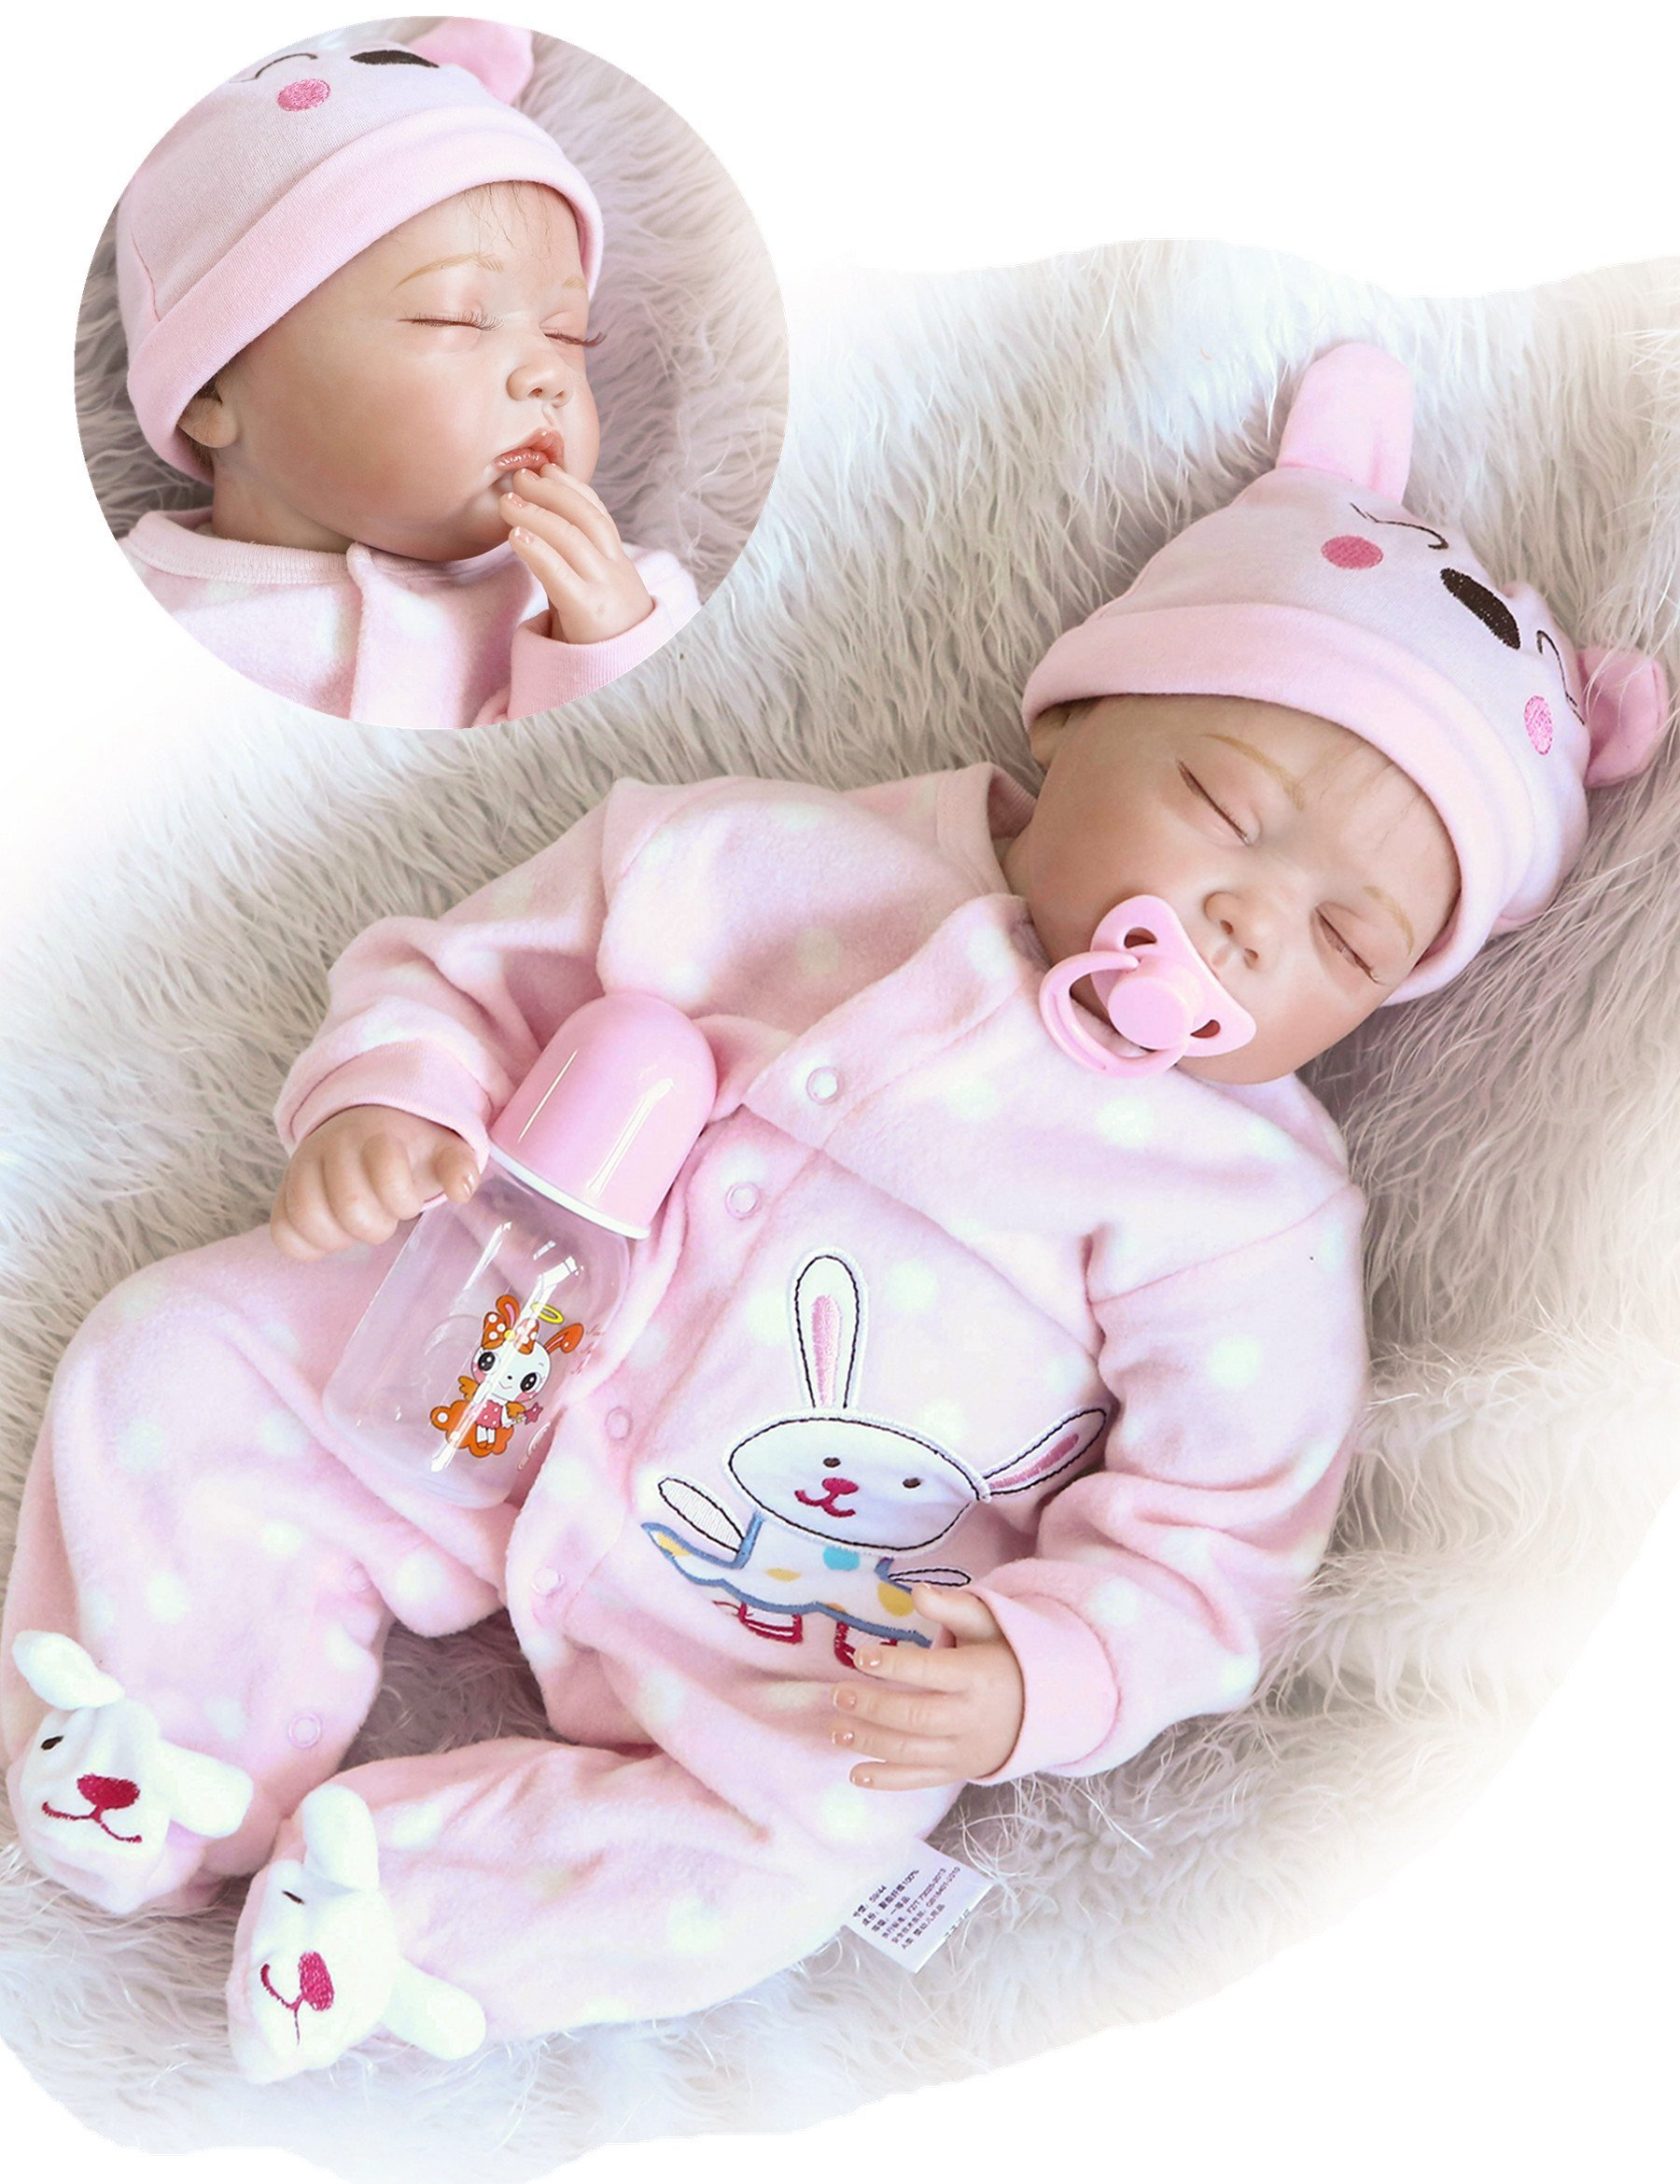 Reborn Baby Dolls Girl Soft Silicone 22 inchs 55 cm Realistic Lifelike Handmade Weighted Body Pink Rabits Outfit Eyes Closed Sleeping Gift Set for Age 3+